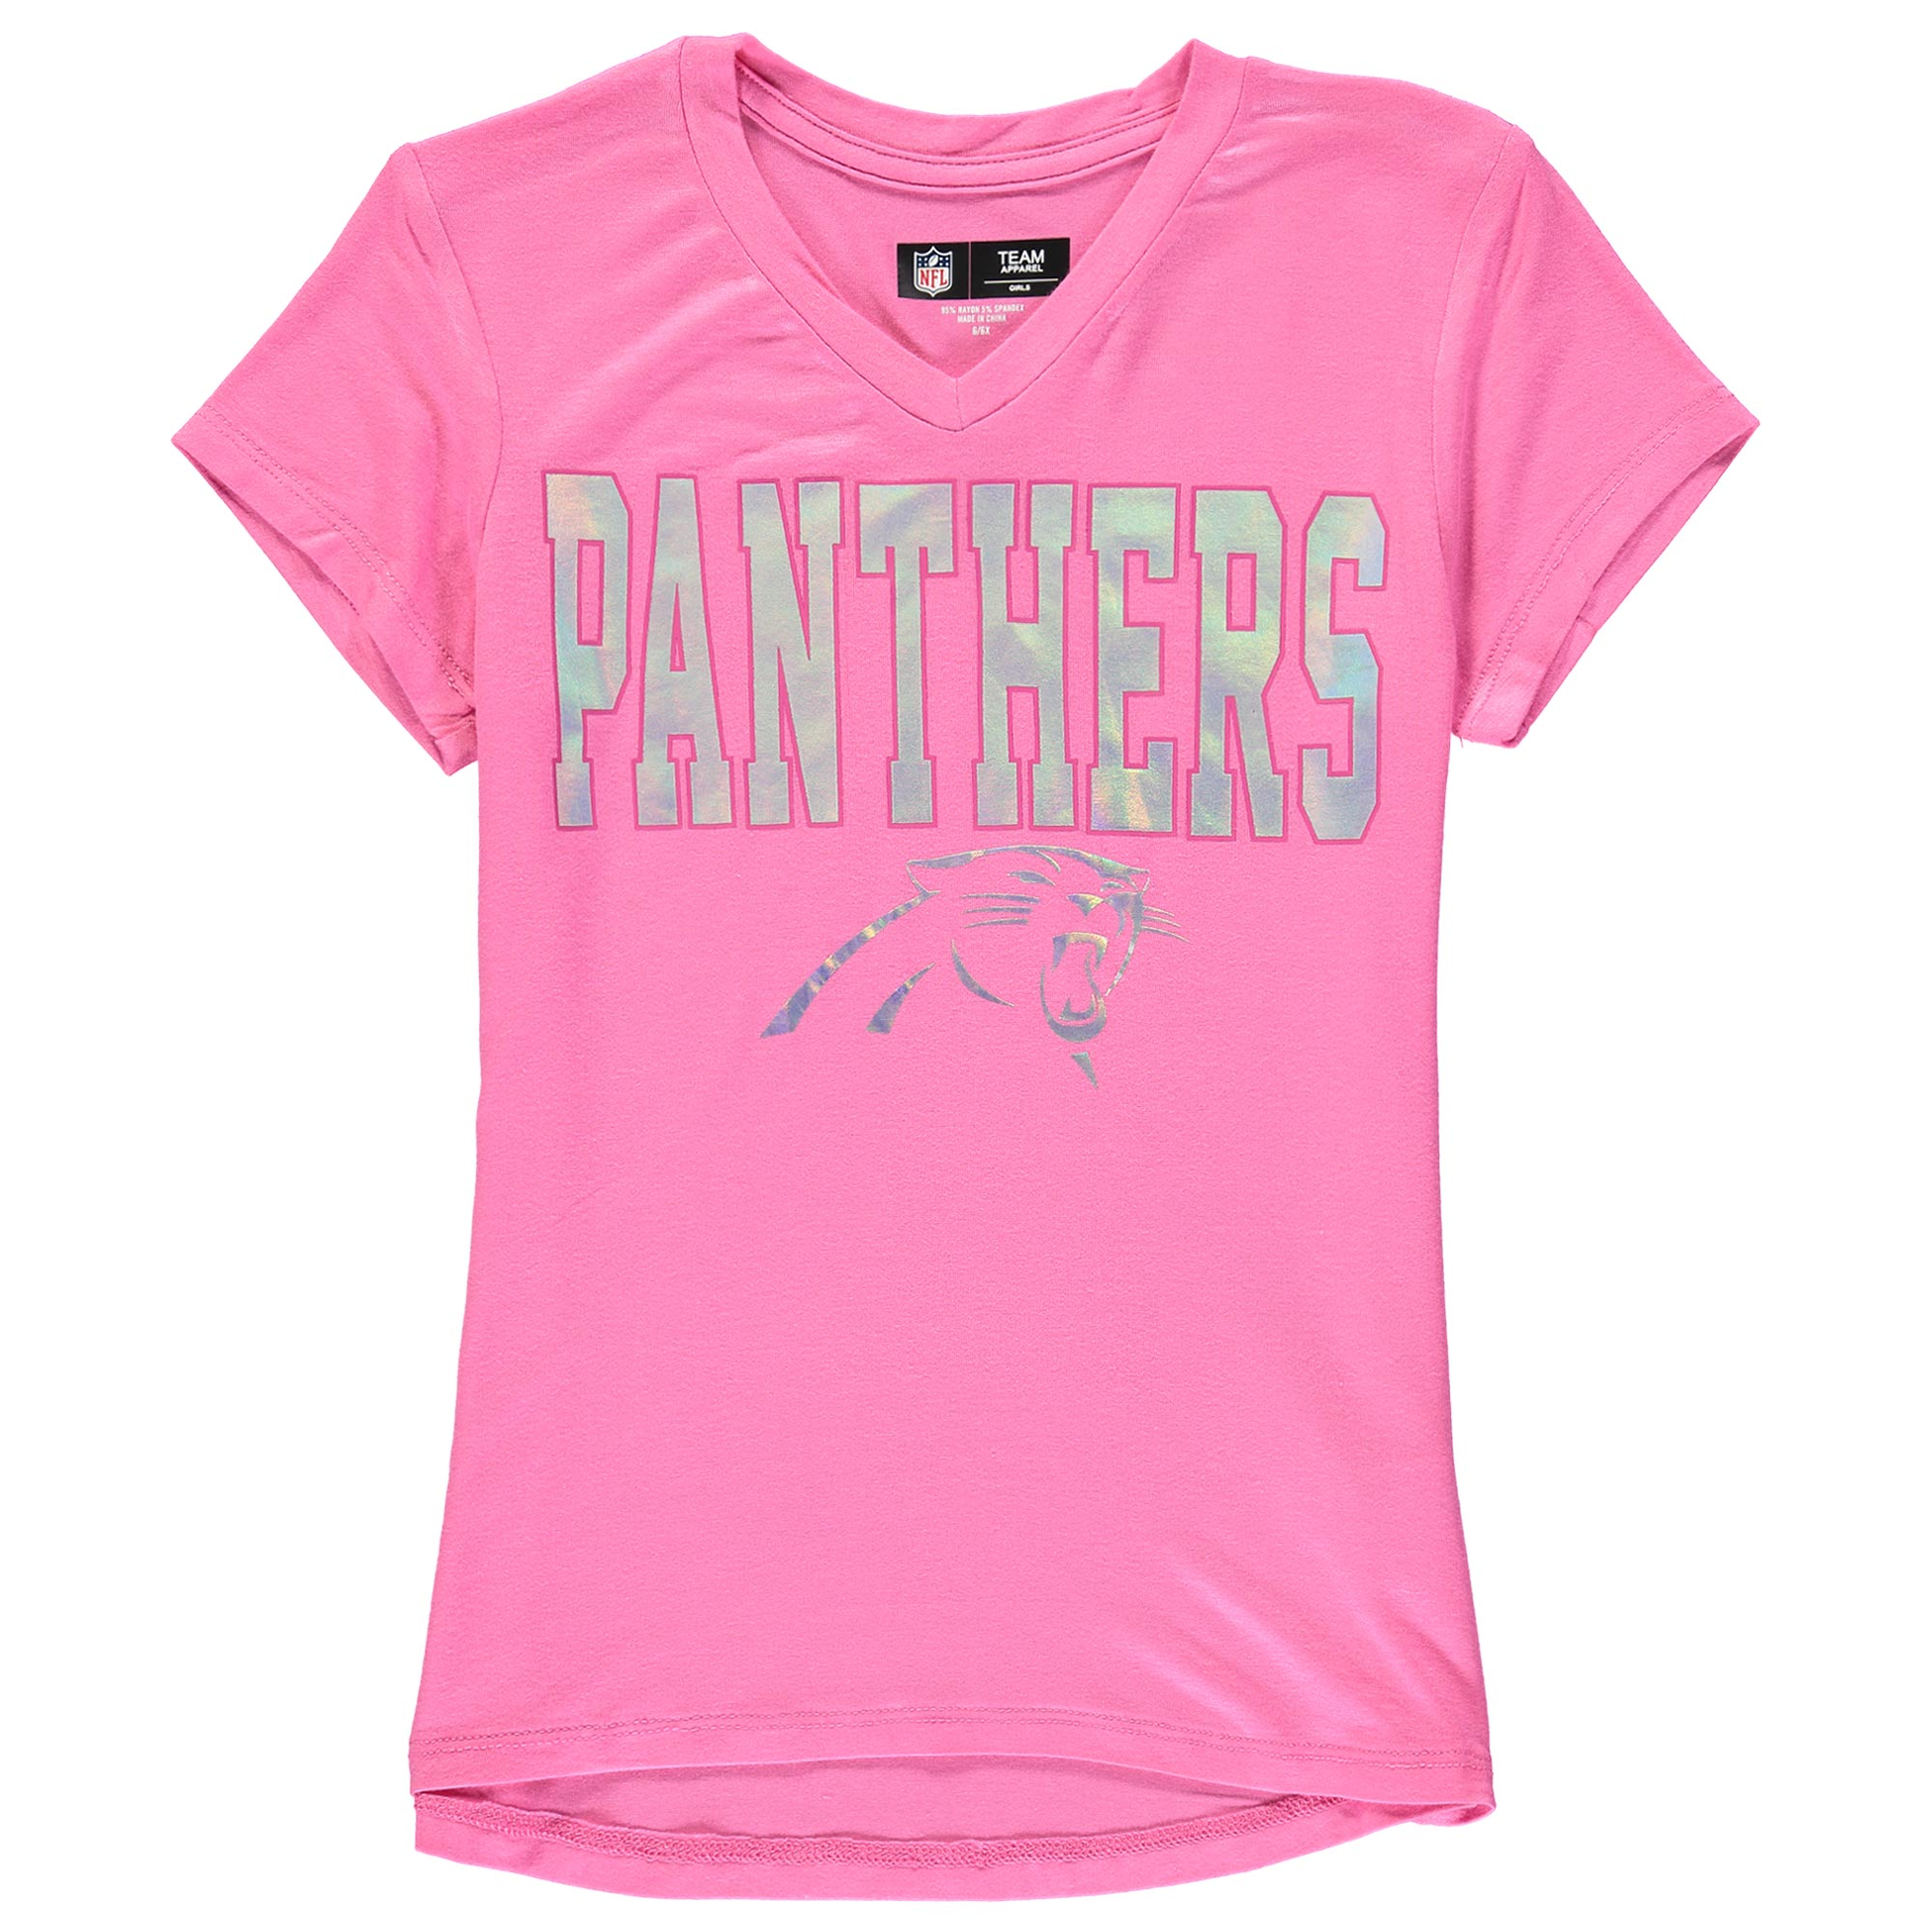 Carolina Panthers 5th & Ocean by New Era Youth Girls V-Neck T-Shirt - Pink